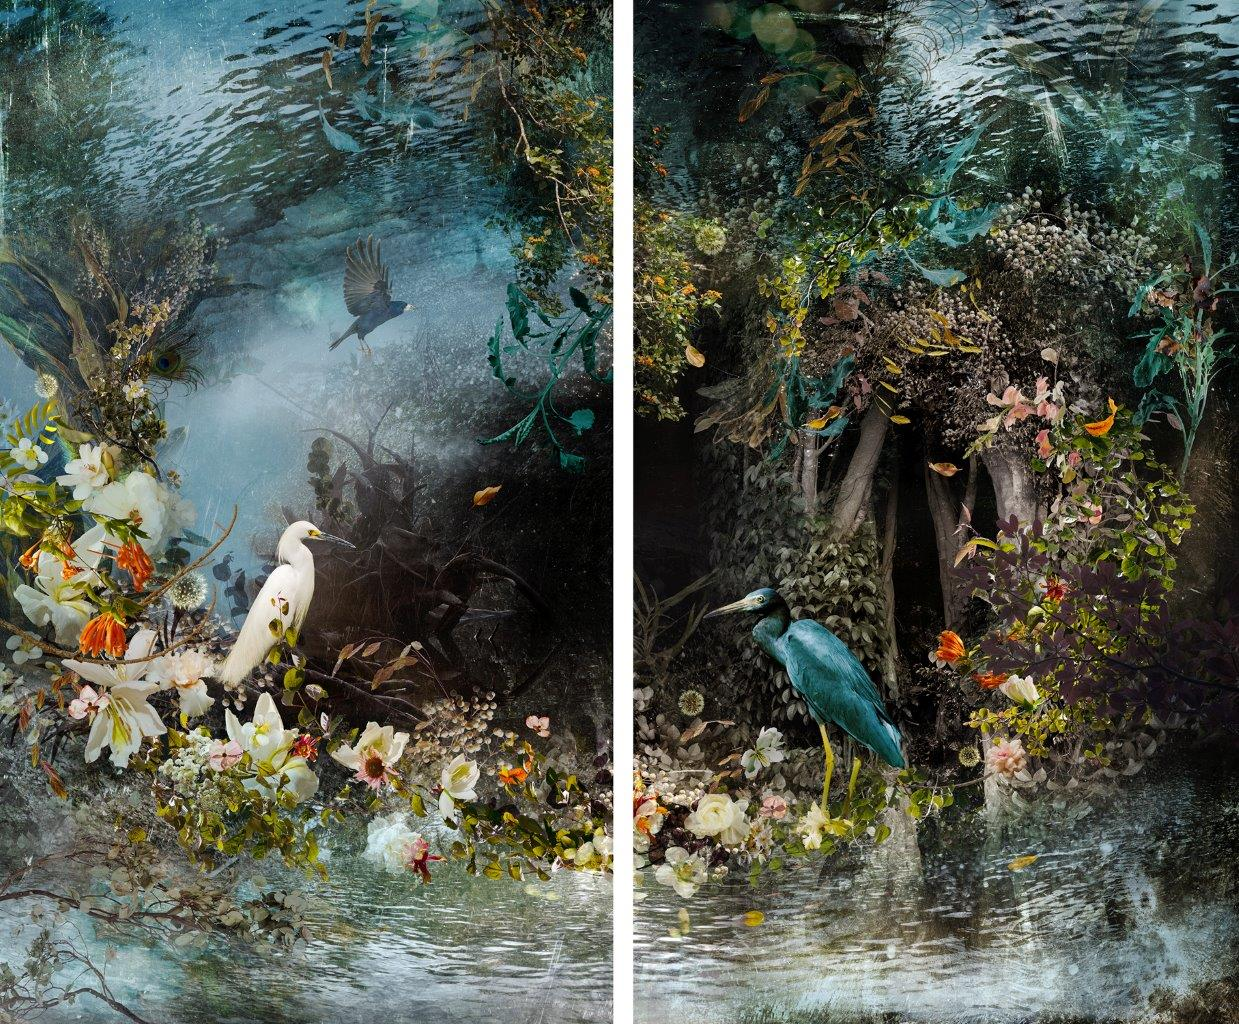 """Ysabel LeMay, """"Reflection"""" (2014), color print diptych, 61 x 72 in. (courtesy of the artist)"""